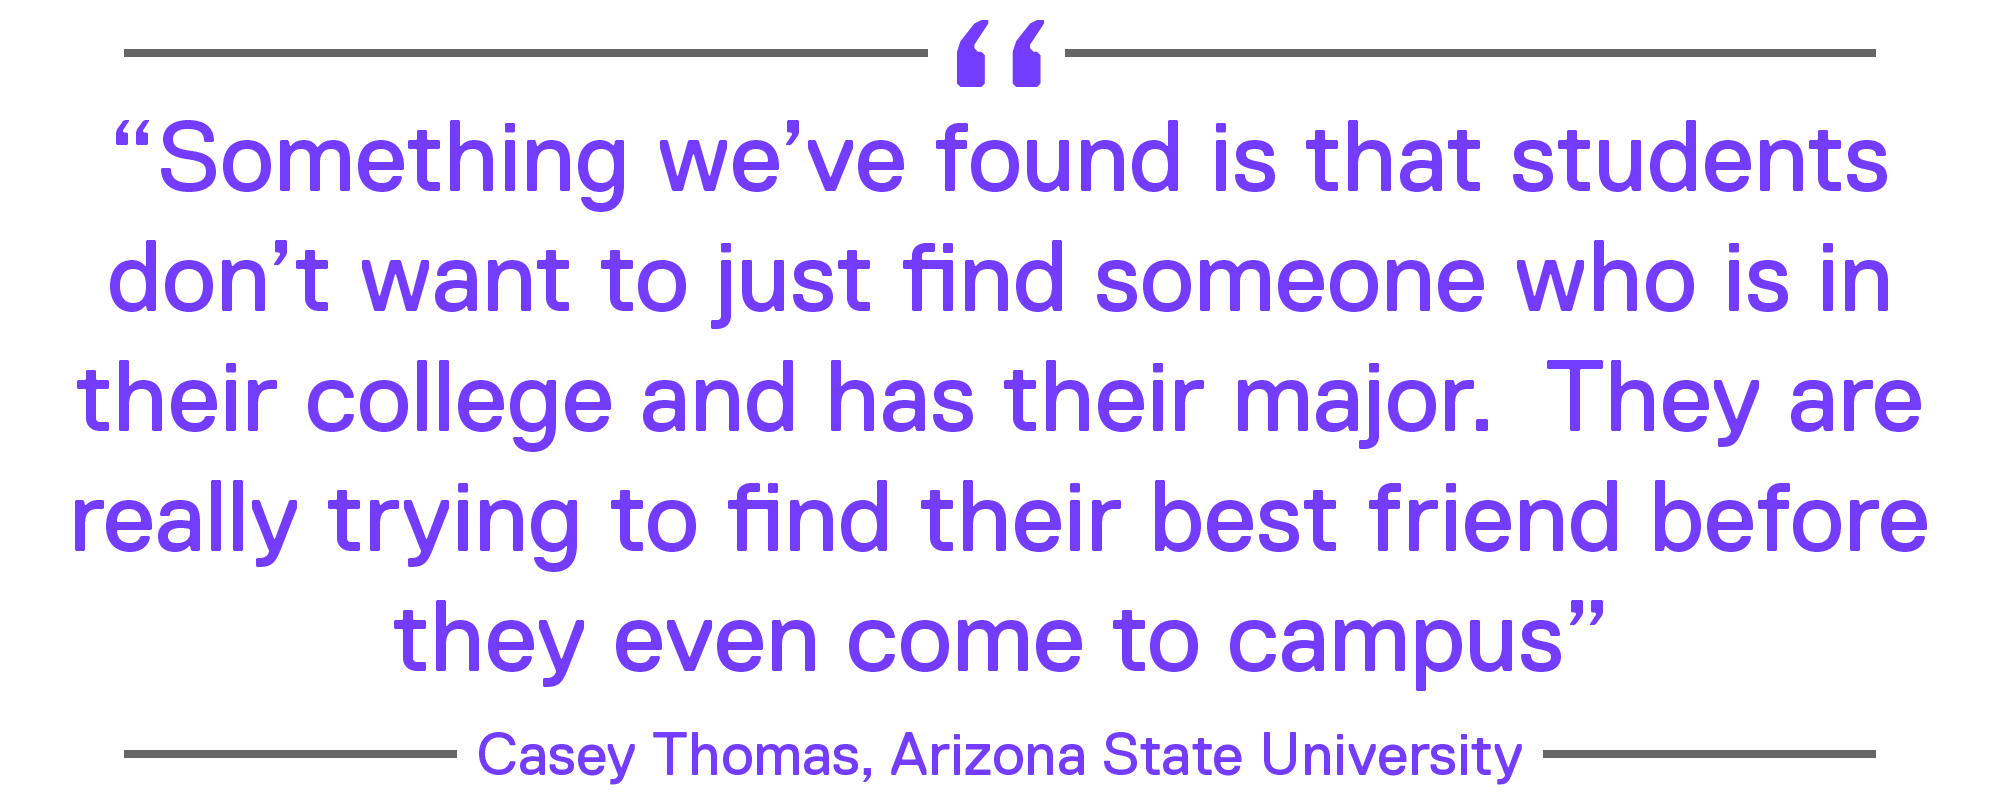 """Something we've found is that students don't want to just find someone who is in their college and has their major. They are really trying to find their best friend before they even come to campus."" - Casey Thomas, Arizona State University"